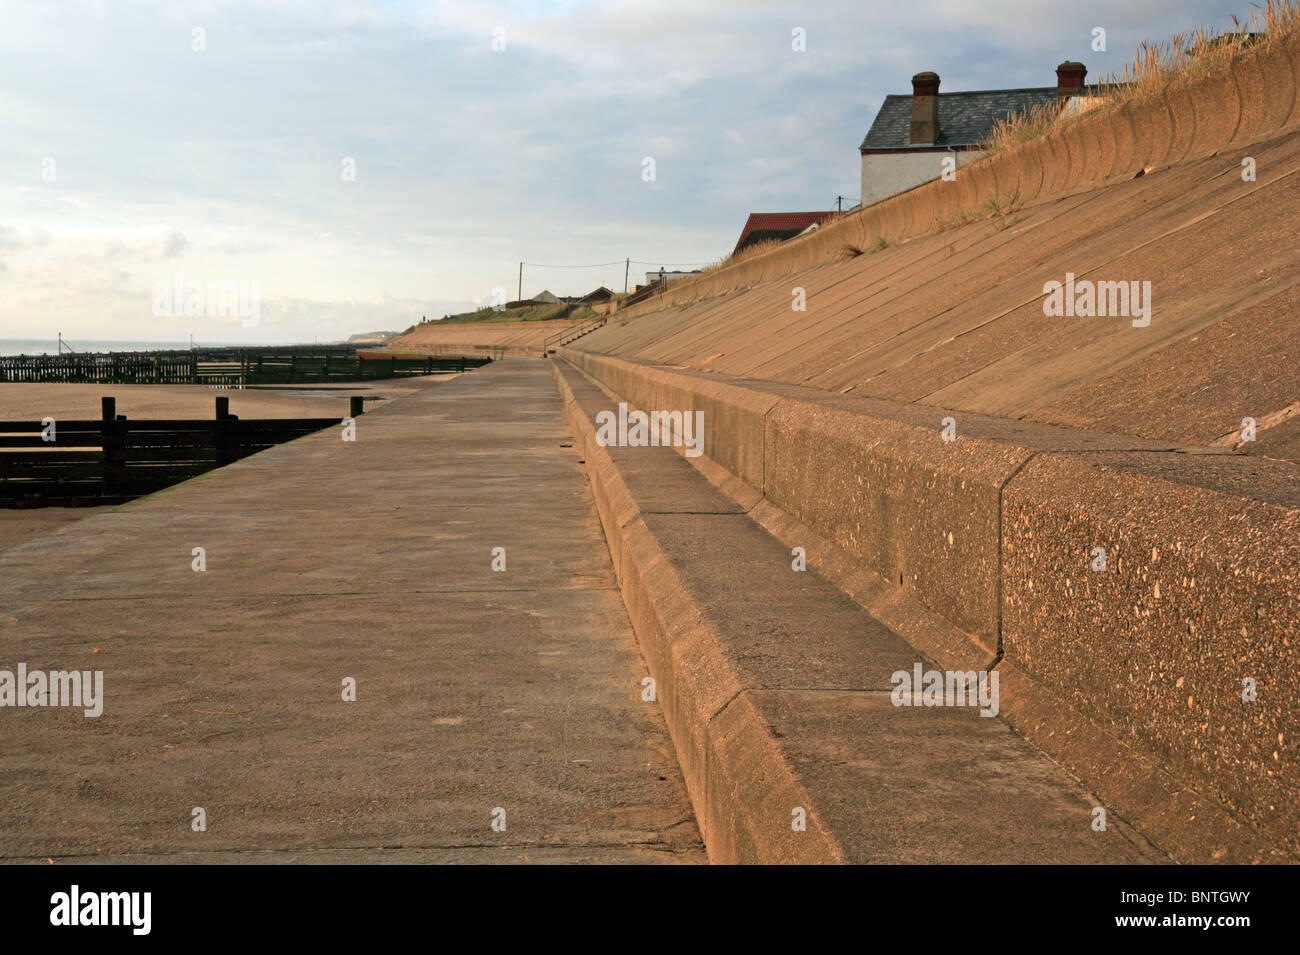 Substantial concrete sea wall for coast protection at Bacton on sea, Norfolk, England, United Kingdom. - Stock Image